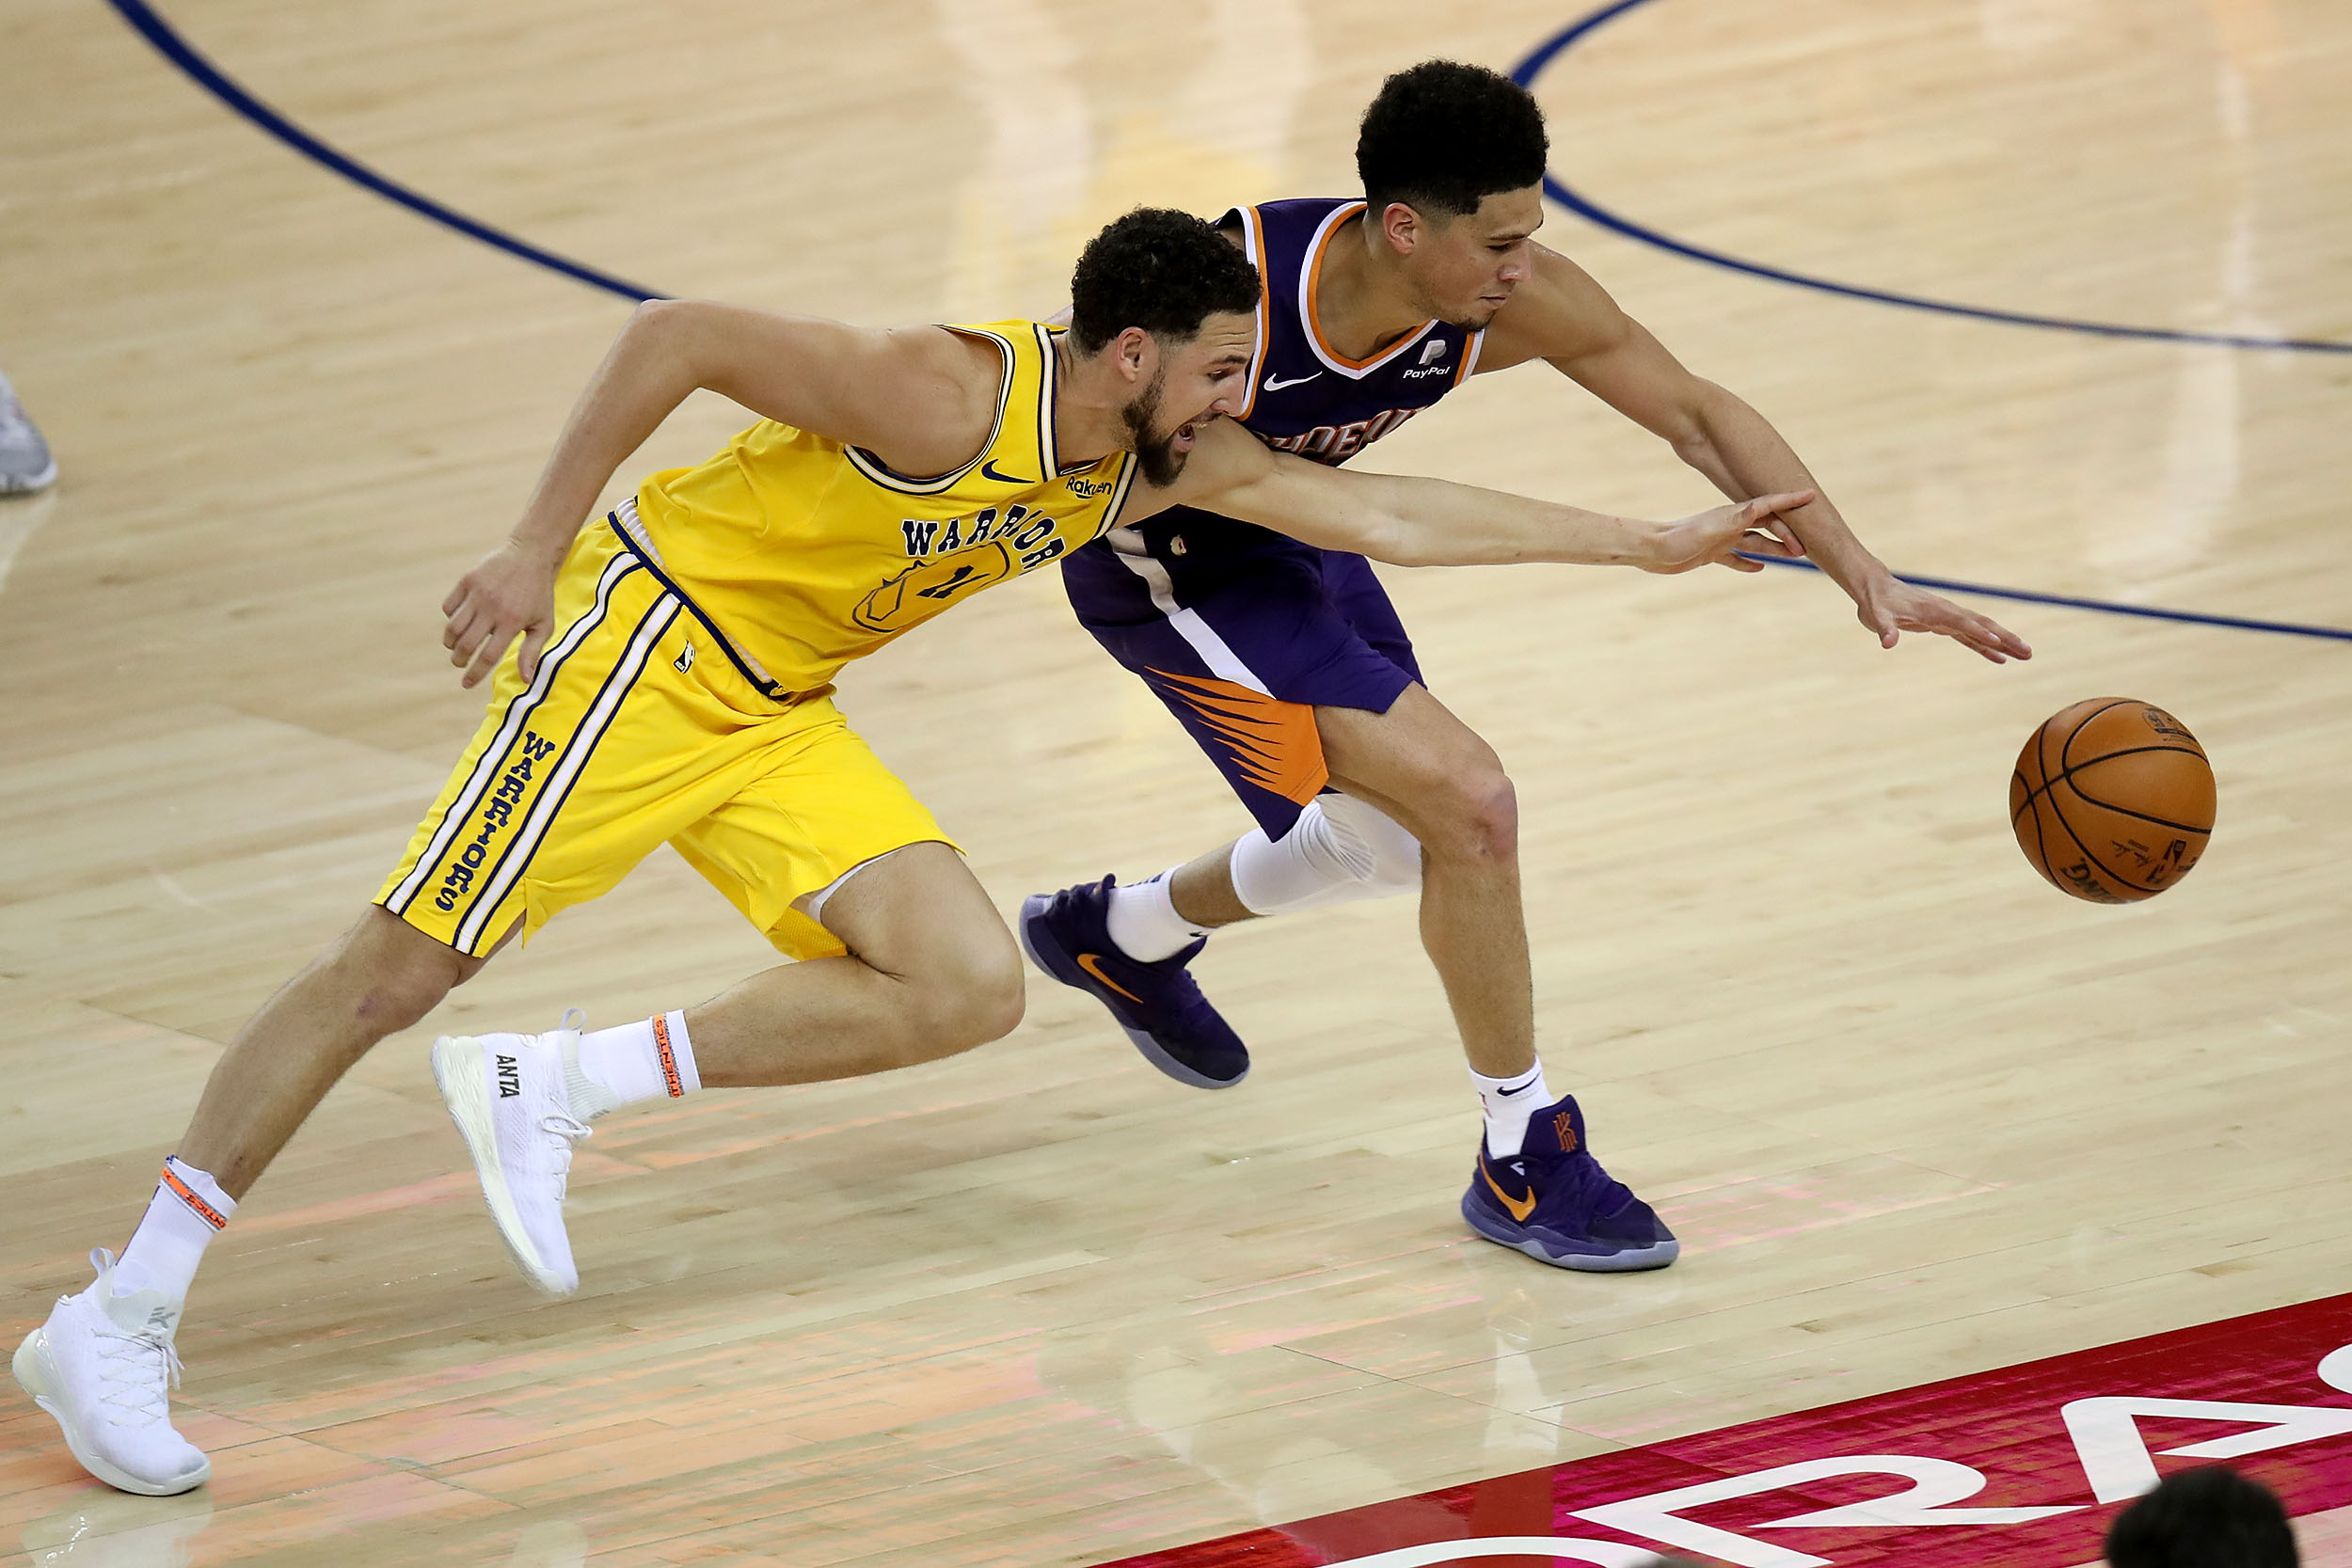 cc20338cb7ff Suns shock Warriors behind Devin Booker s 37 – SFBay